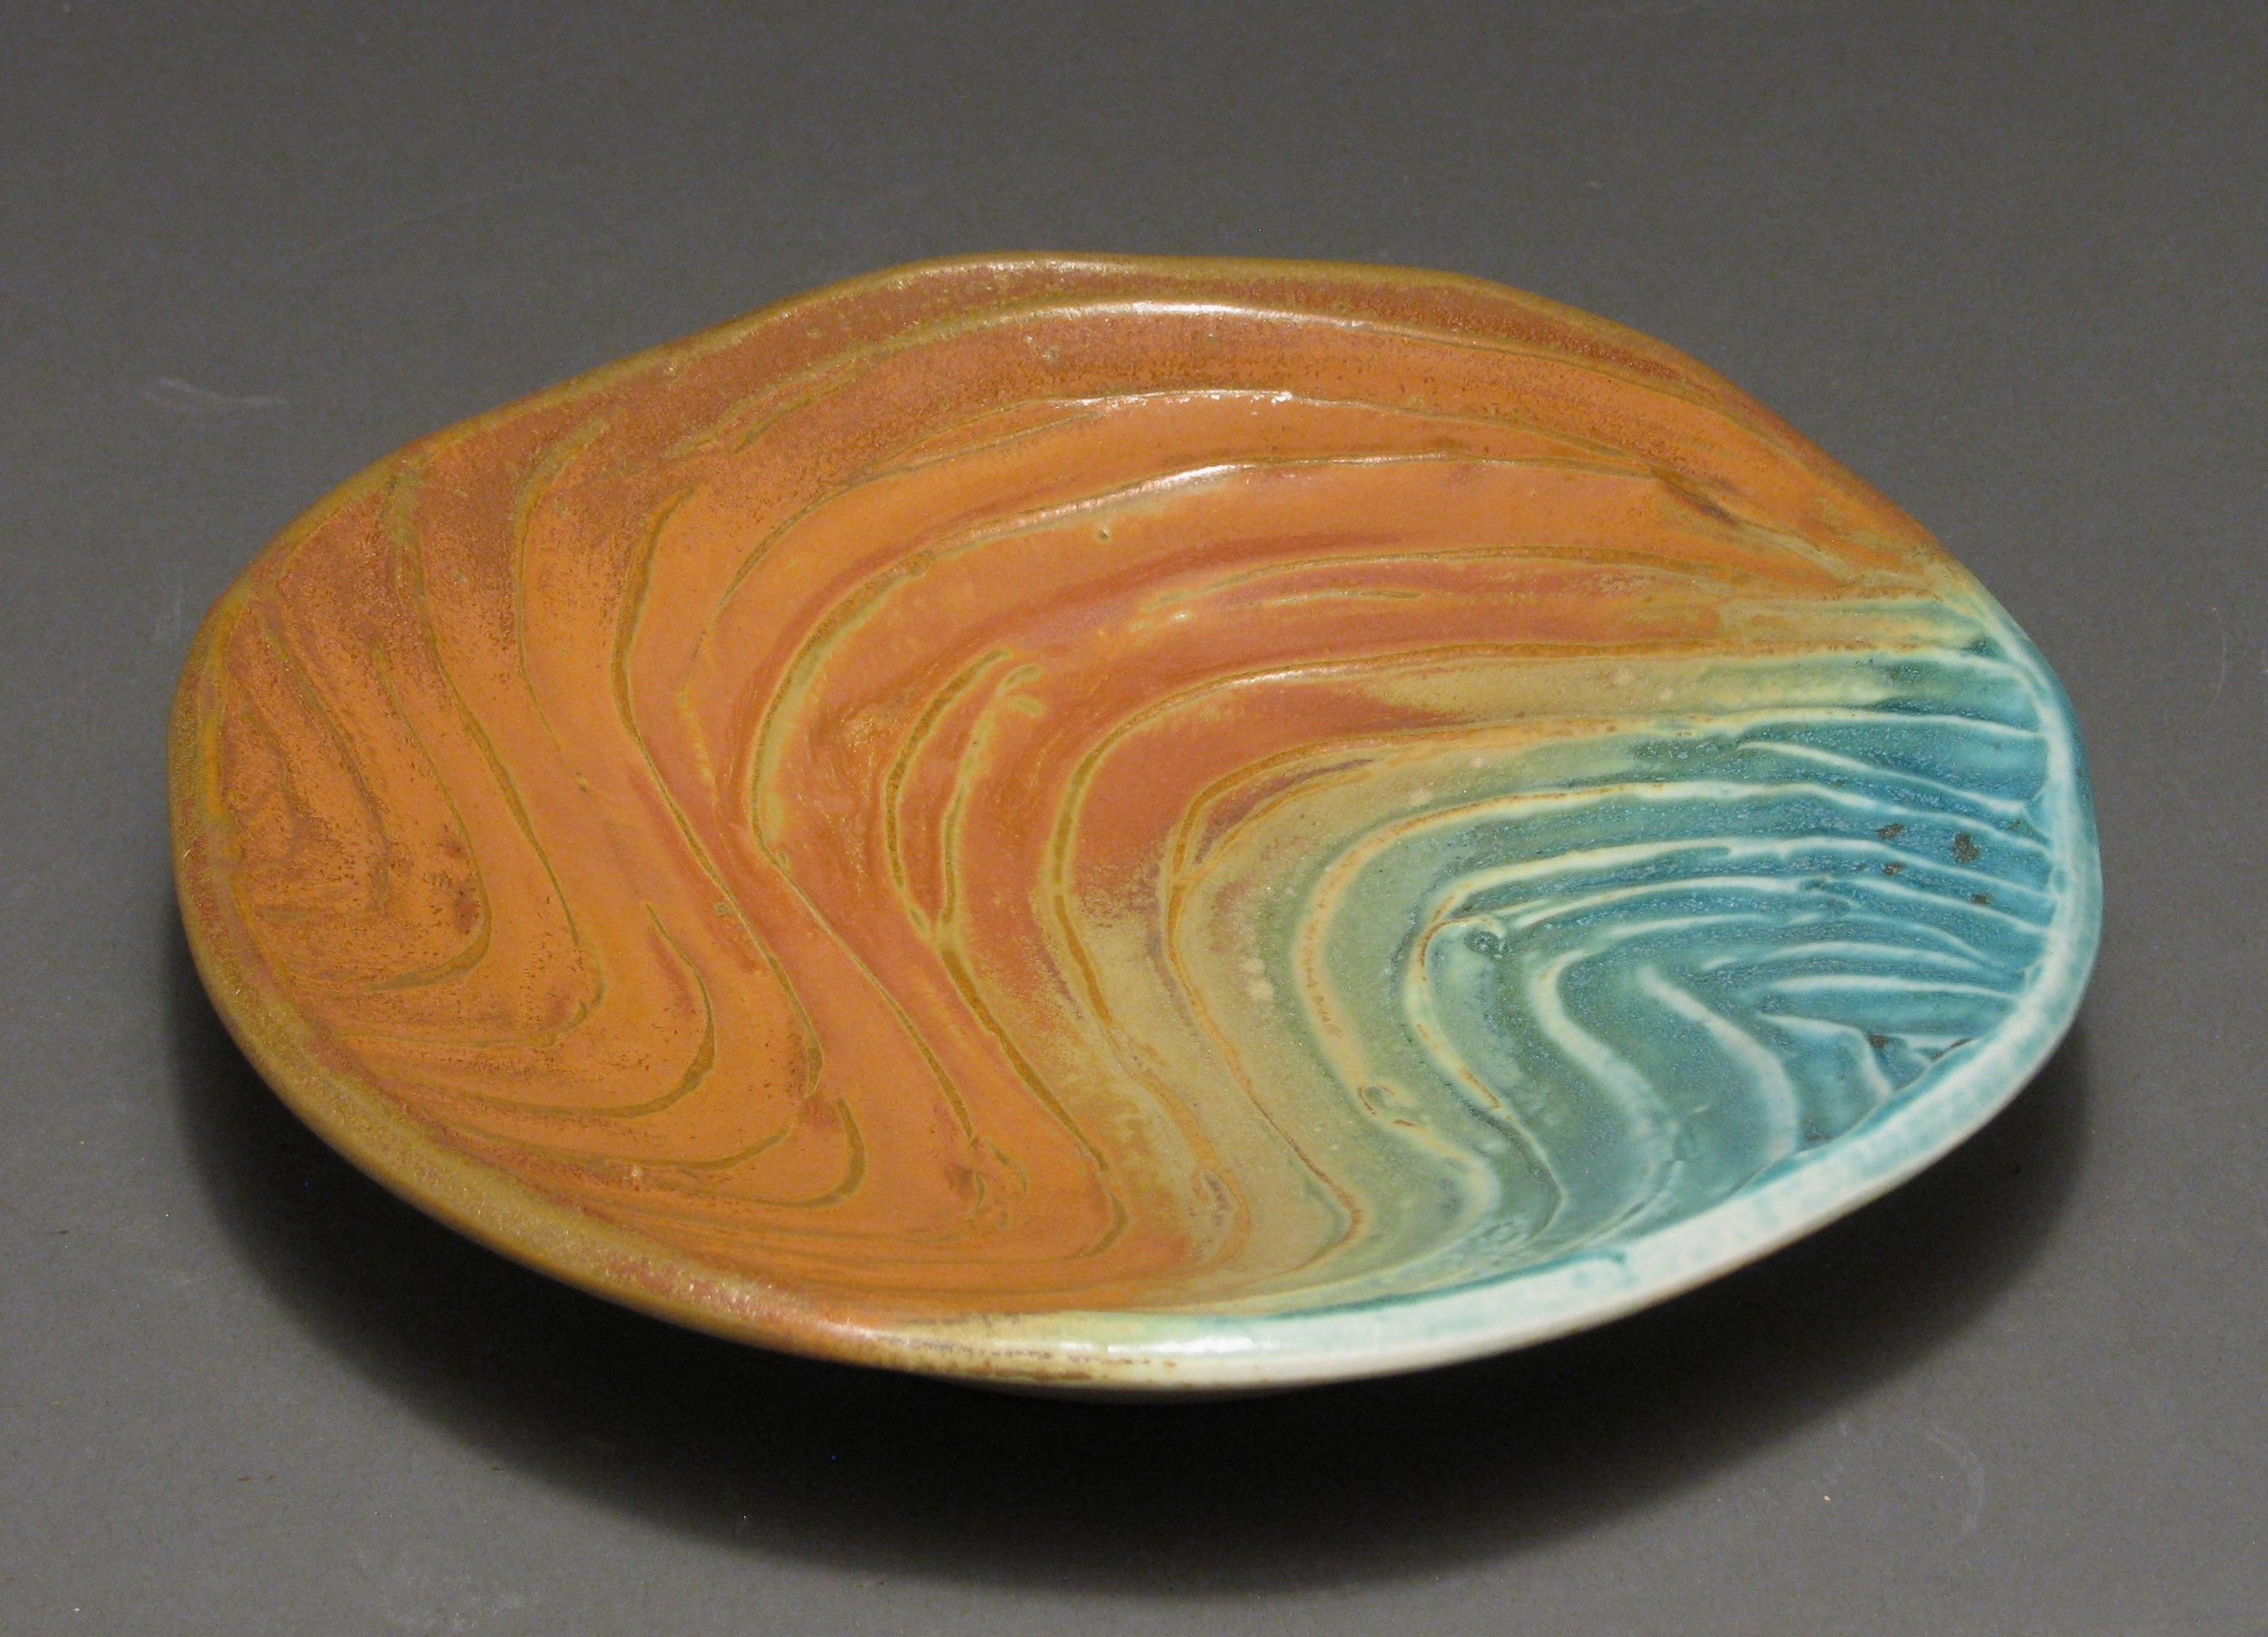 "Plate  8.25"" diameter by 1.75"" tall (size can be varied according to customer preference)  Glazes: matte turquoise and matte rust (this design also works well with the ash glazes)"